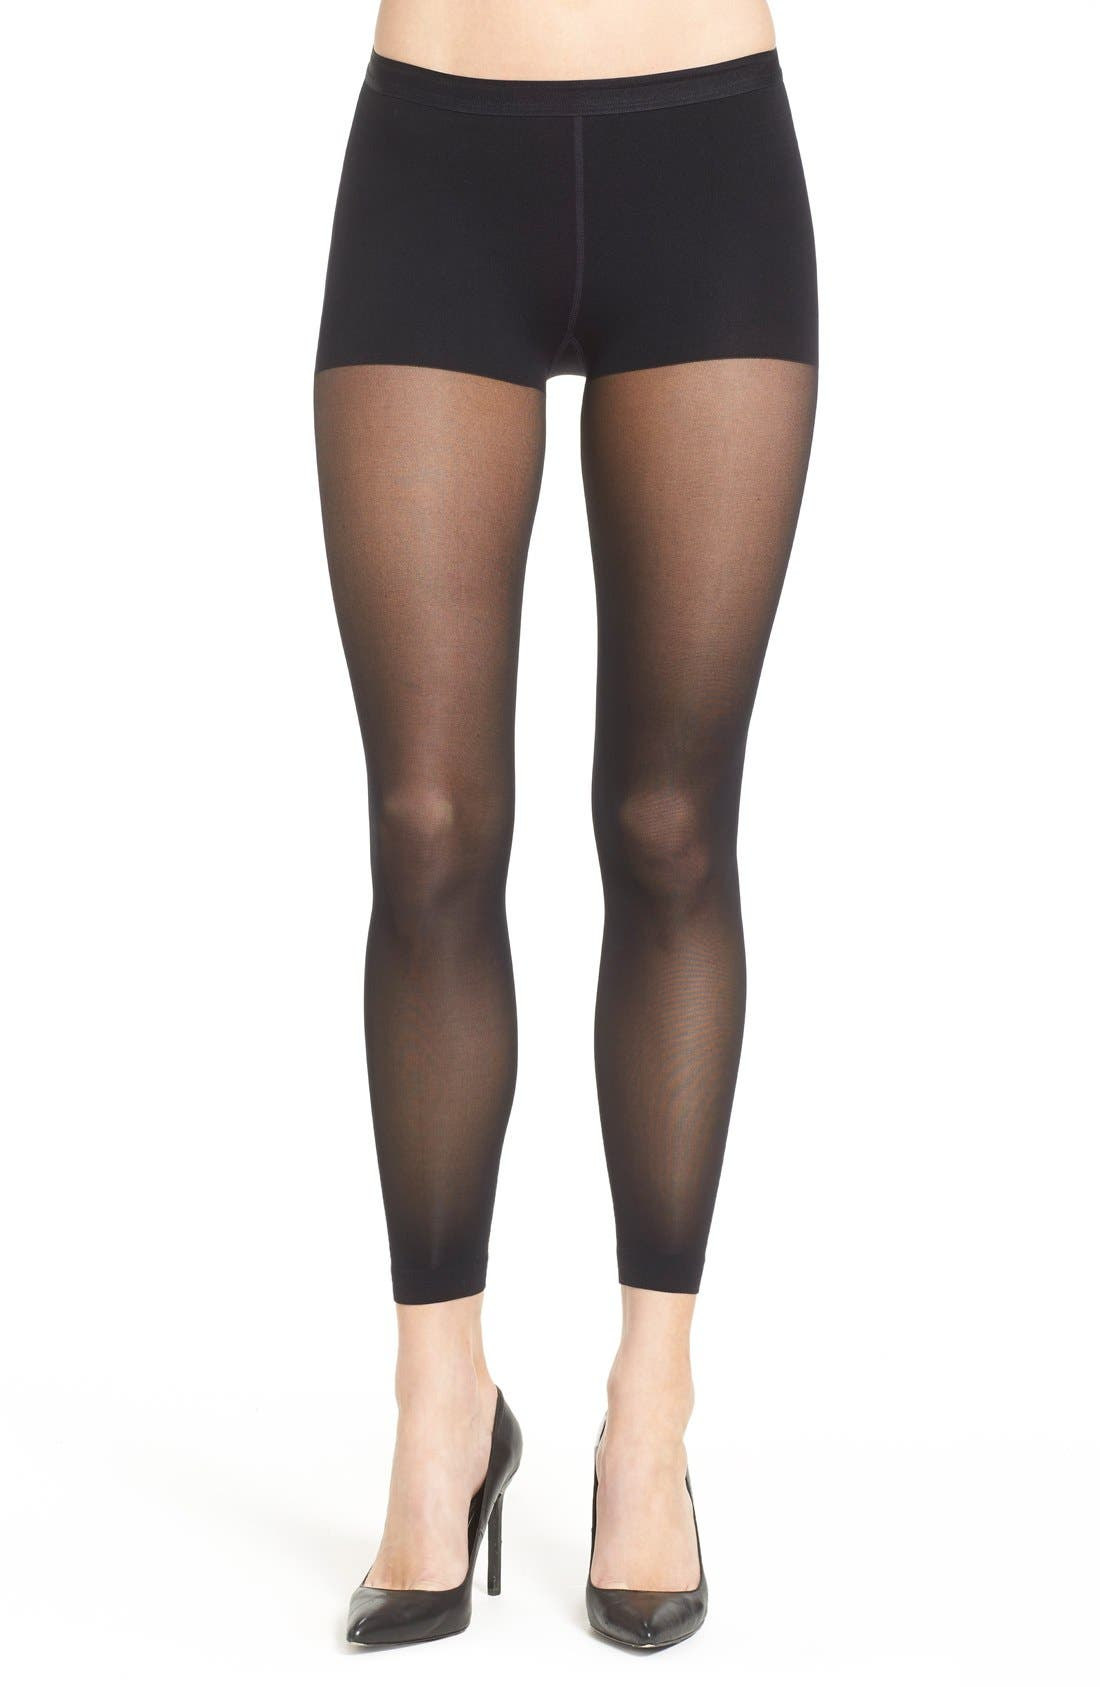 Main Image - ITEM m6 Sheer Footless Tights